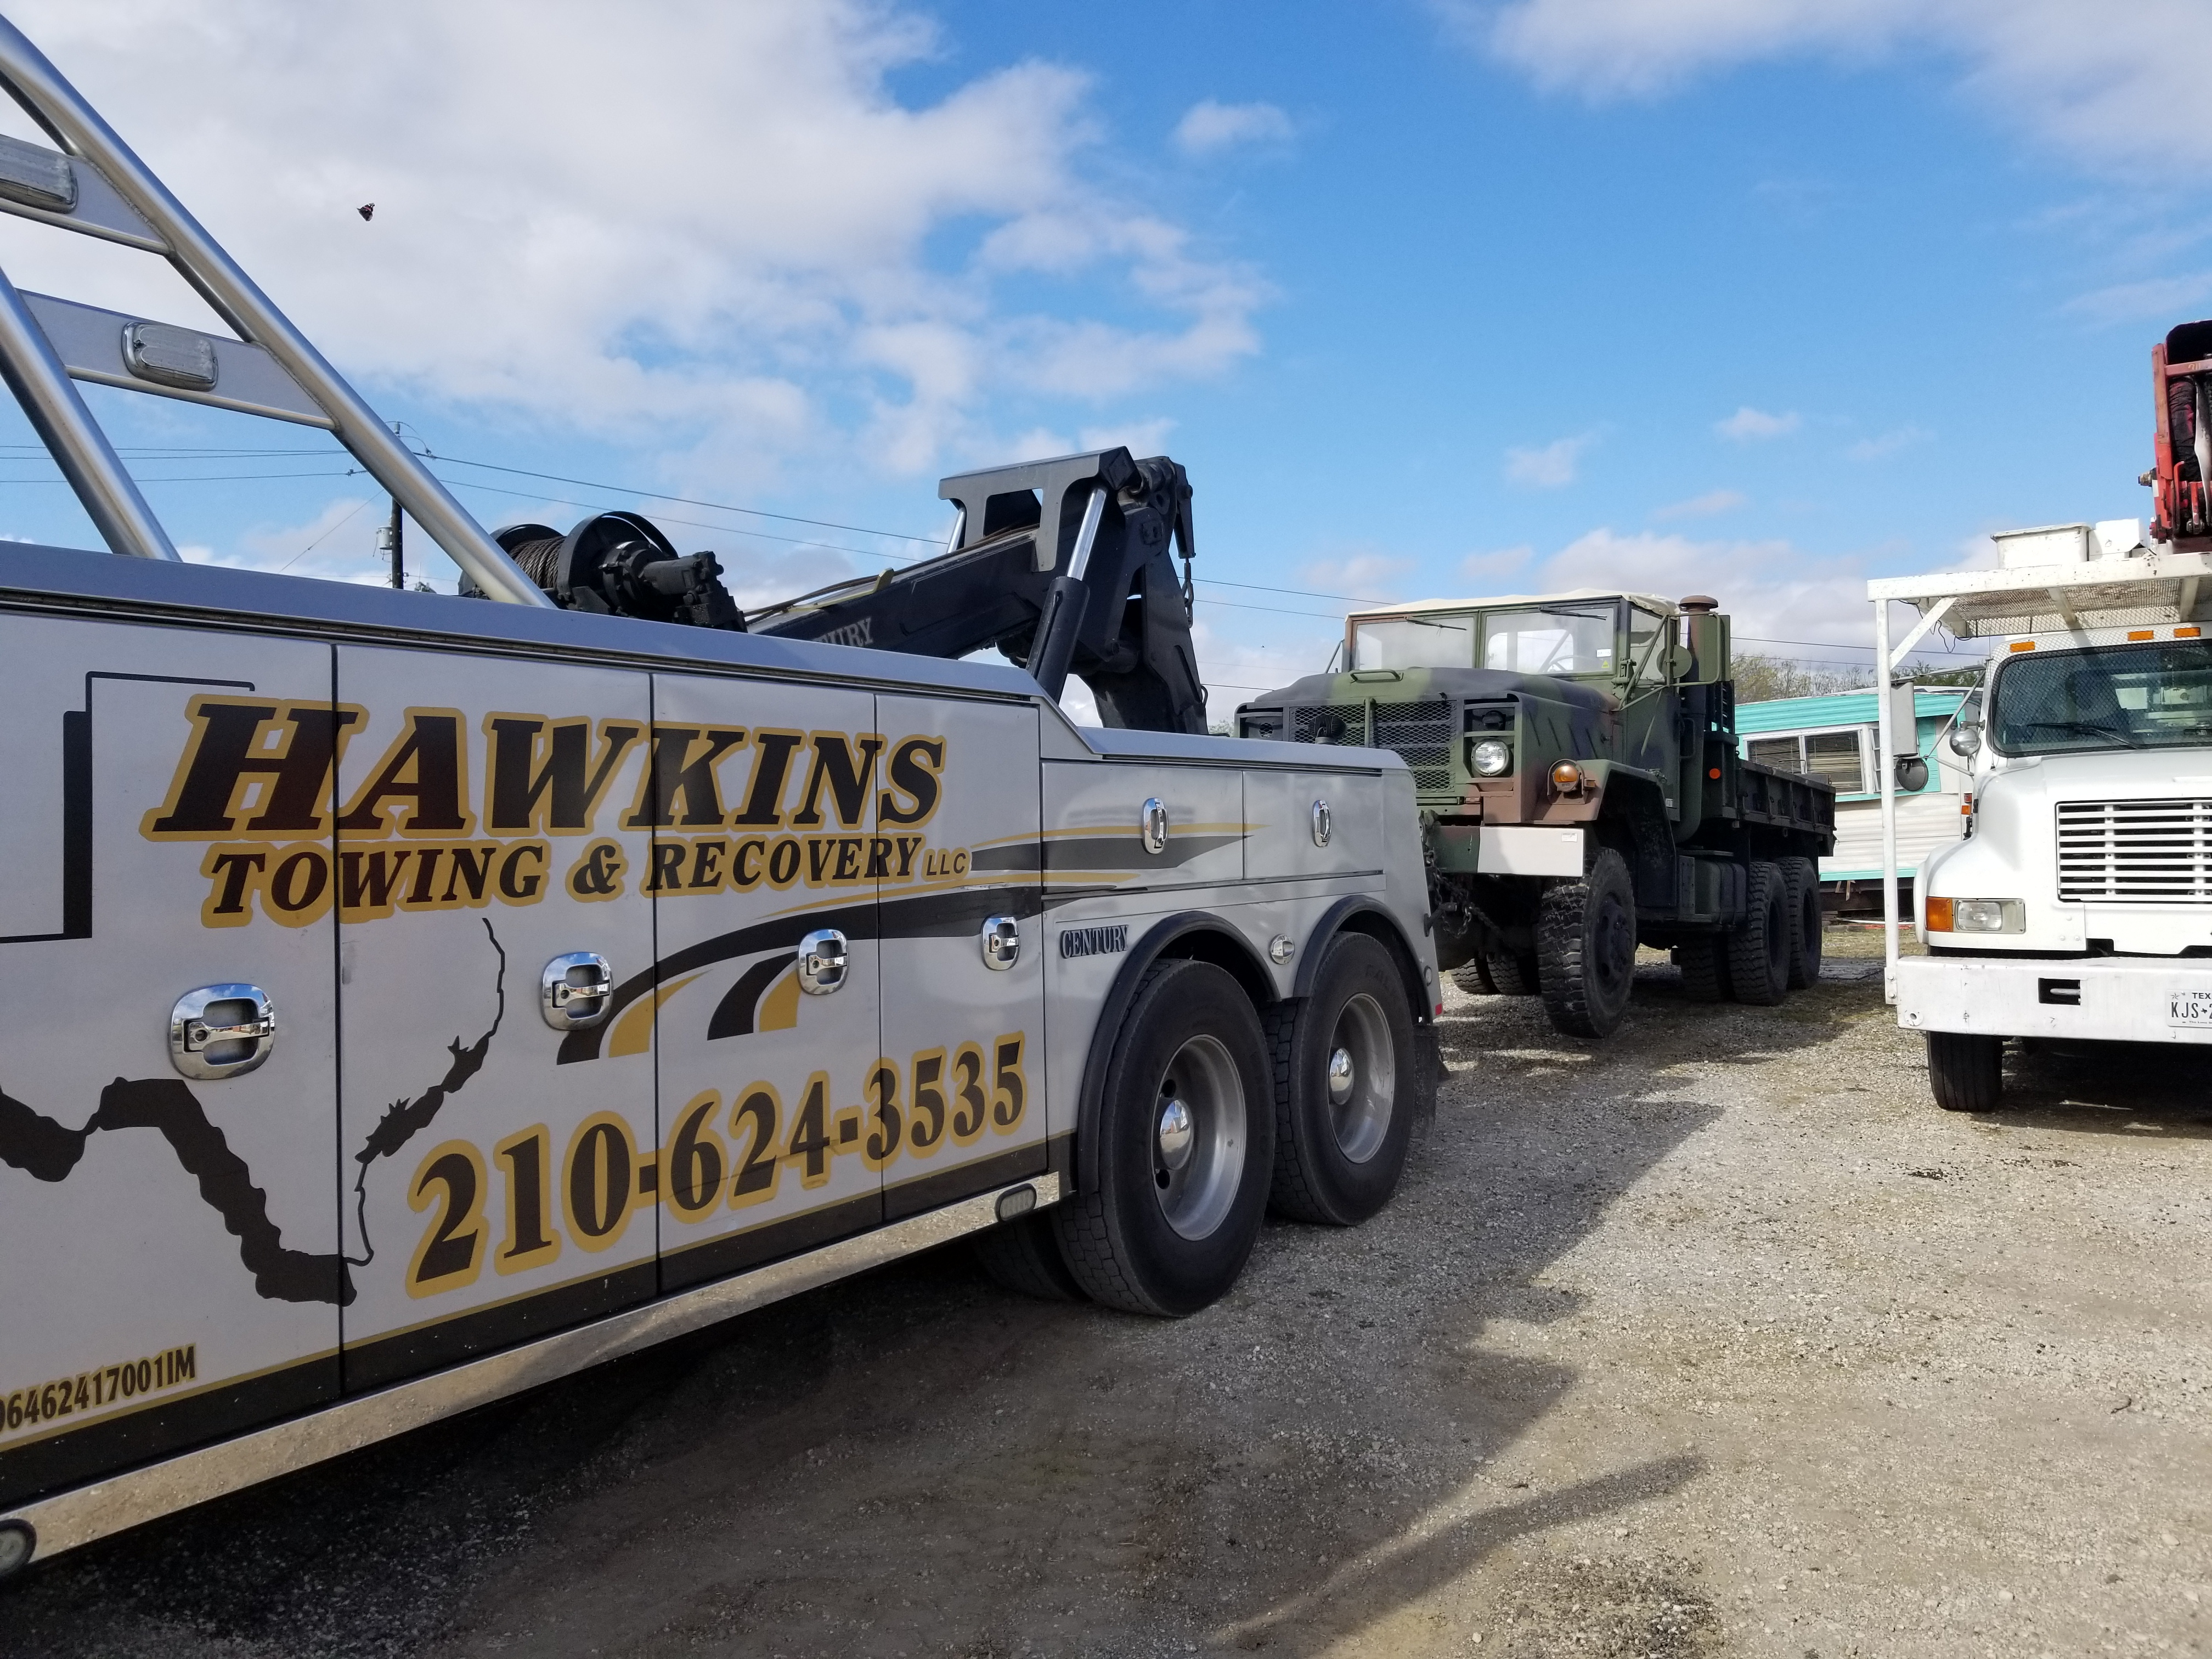 Hawkins Towing & Recovery image 8